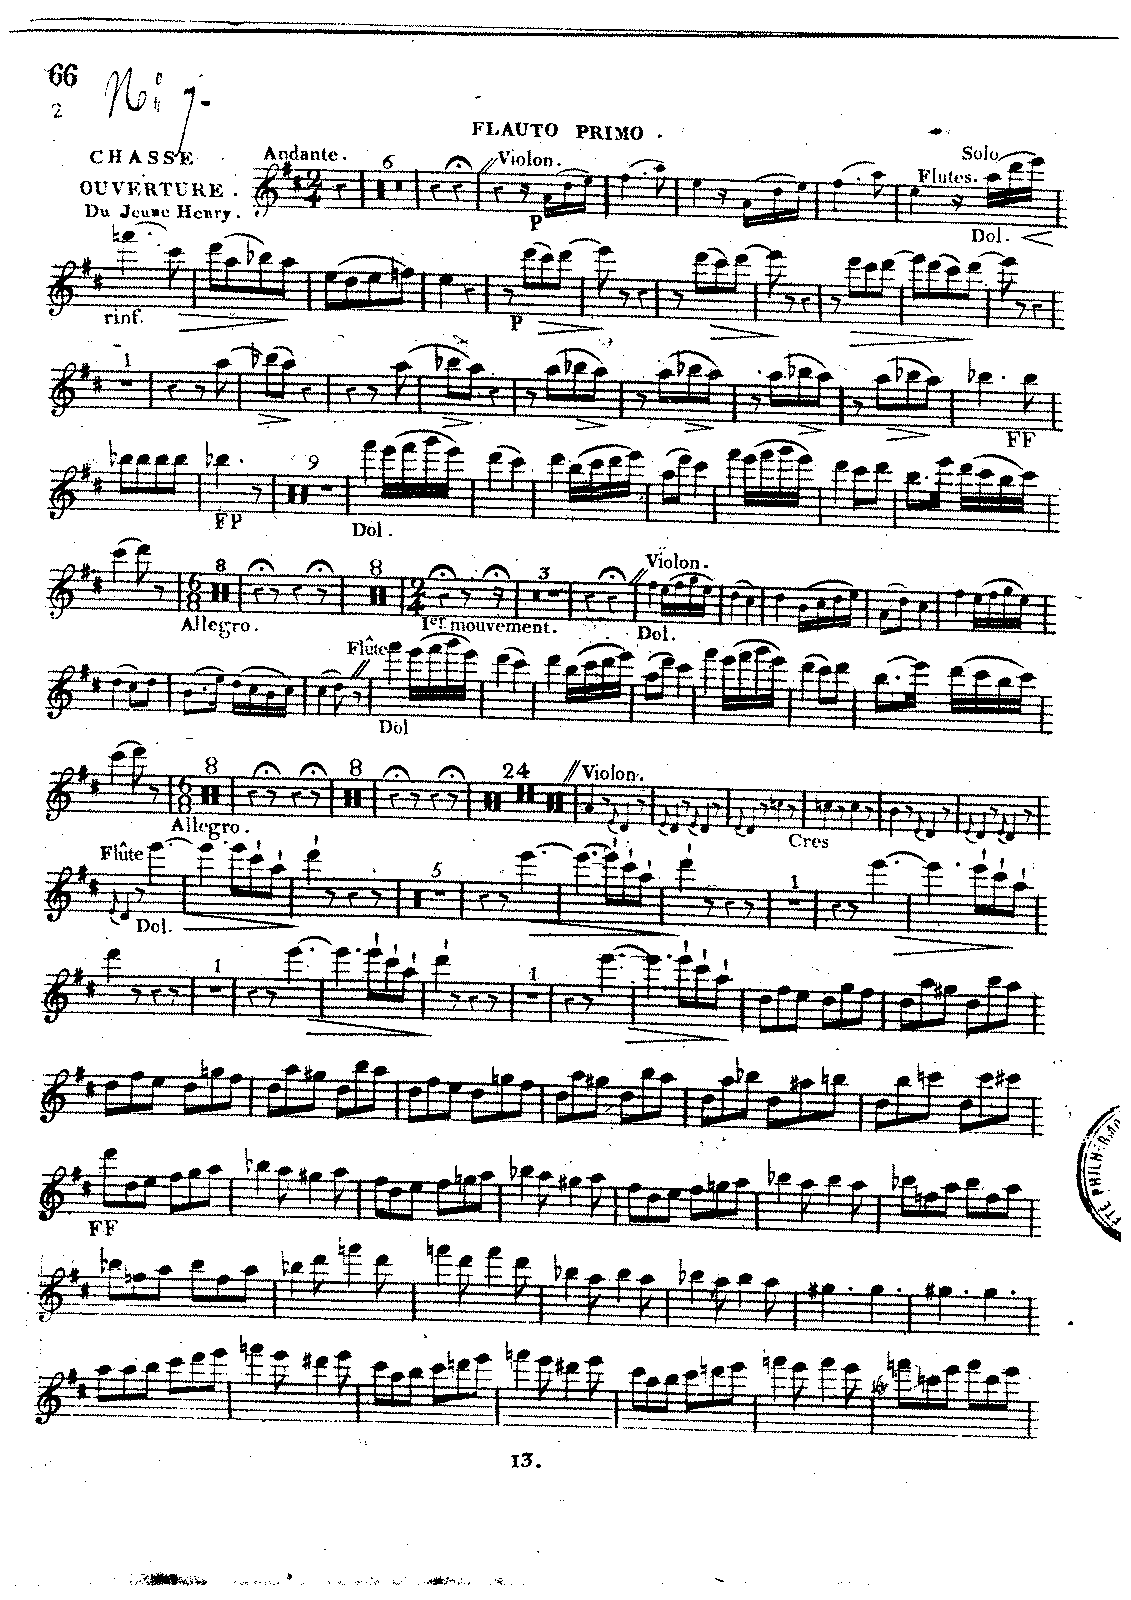 PMLP142051-Mehul-ChasseJeuneHenry-Source-Flutes.pdf